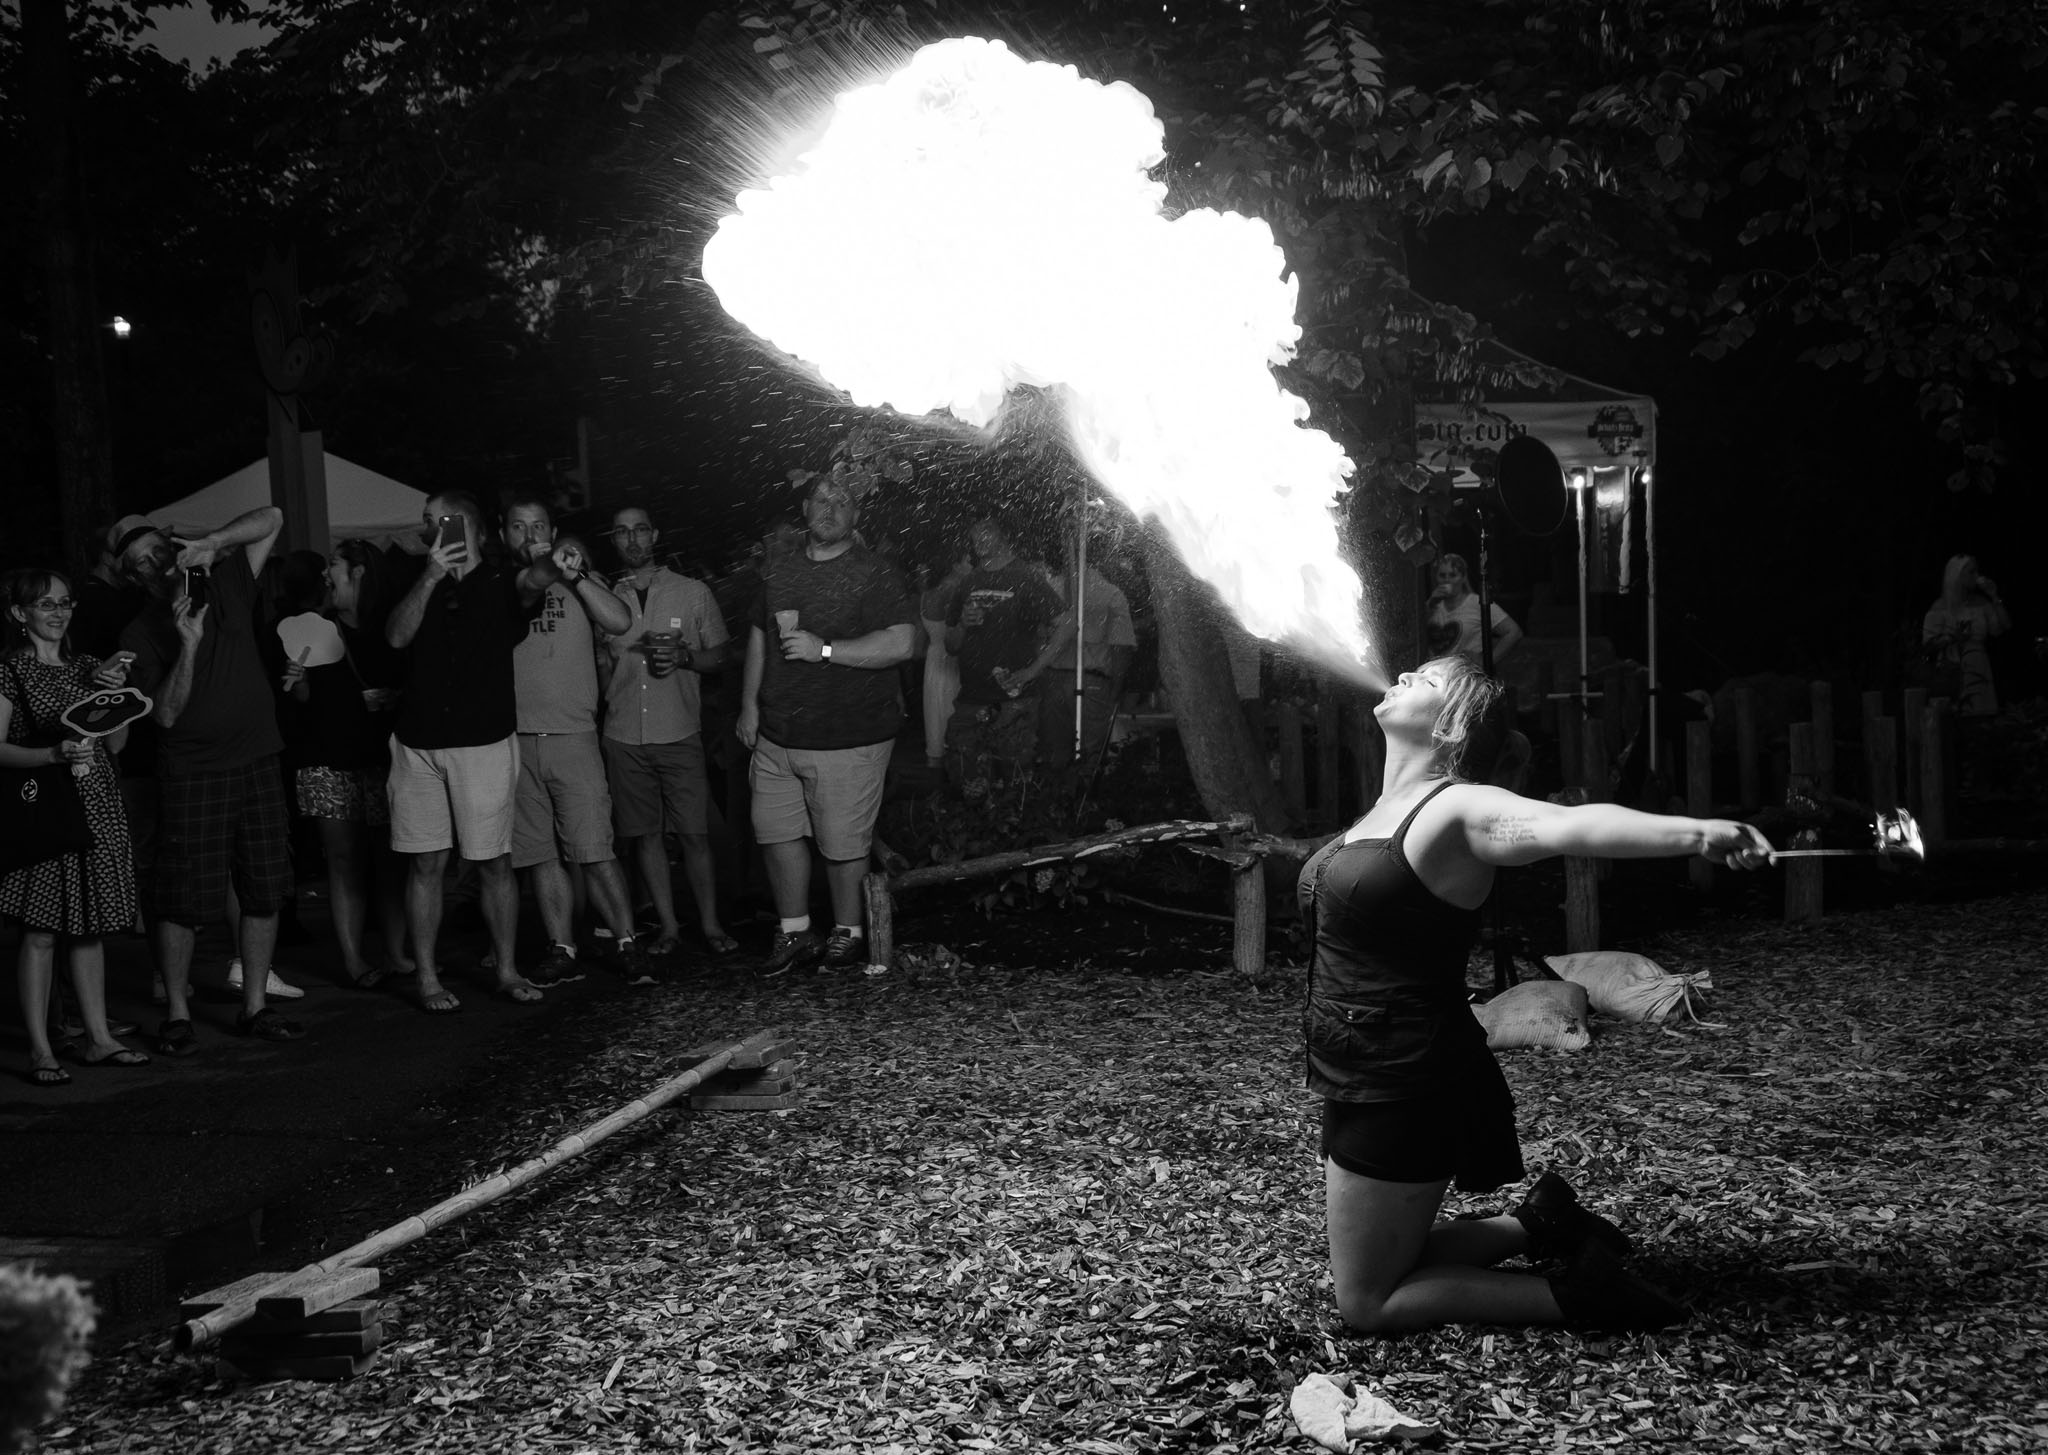 Independent Fire Performer, Meghan Stiles, delighting an audience with her prowess.